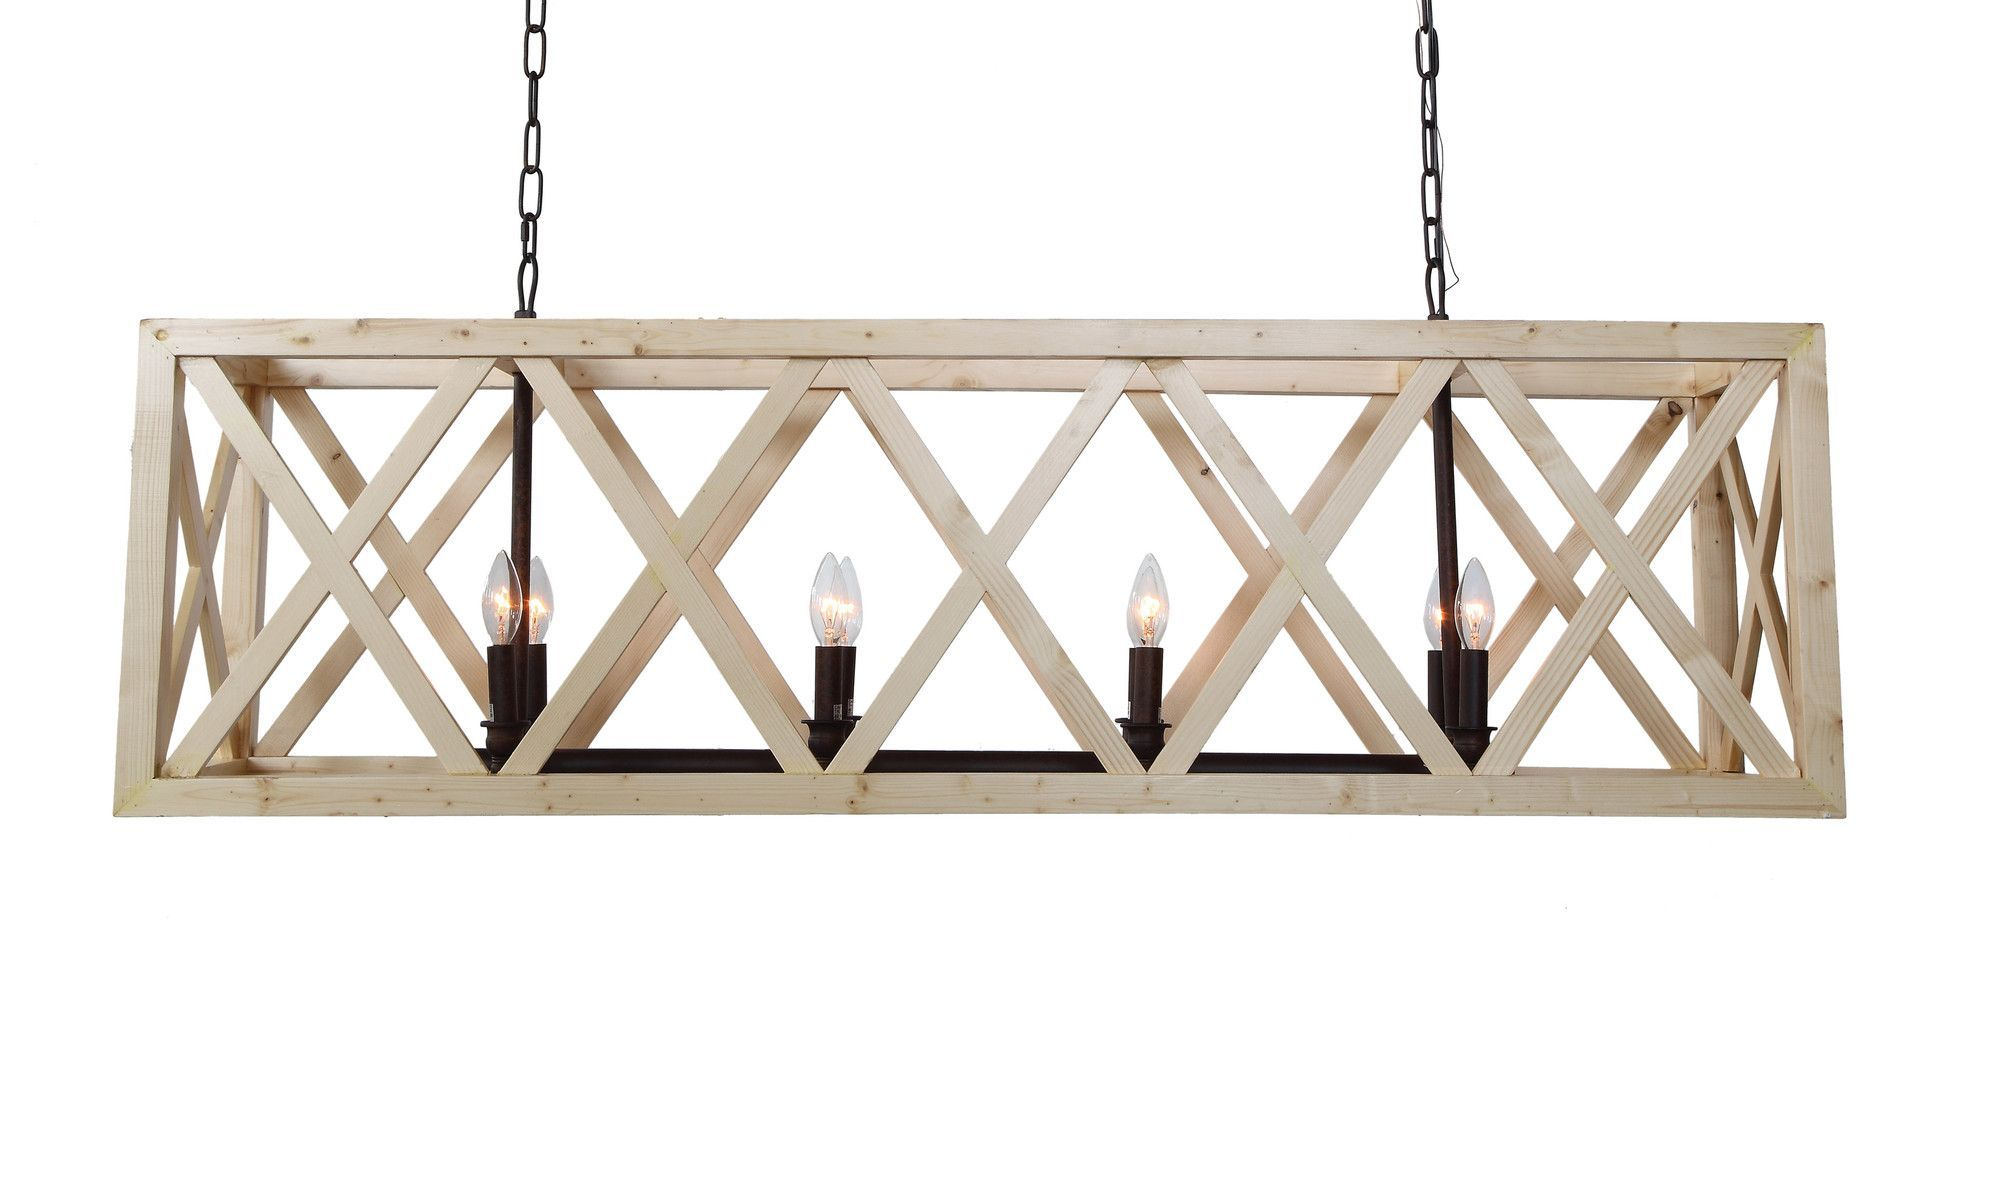 Features Gatherings Collection Material Wood And Iron Color Dining Room ChandeliersIron